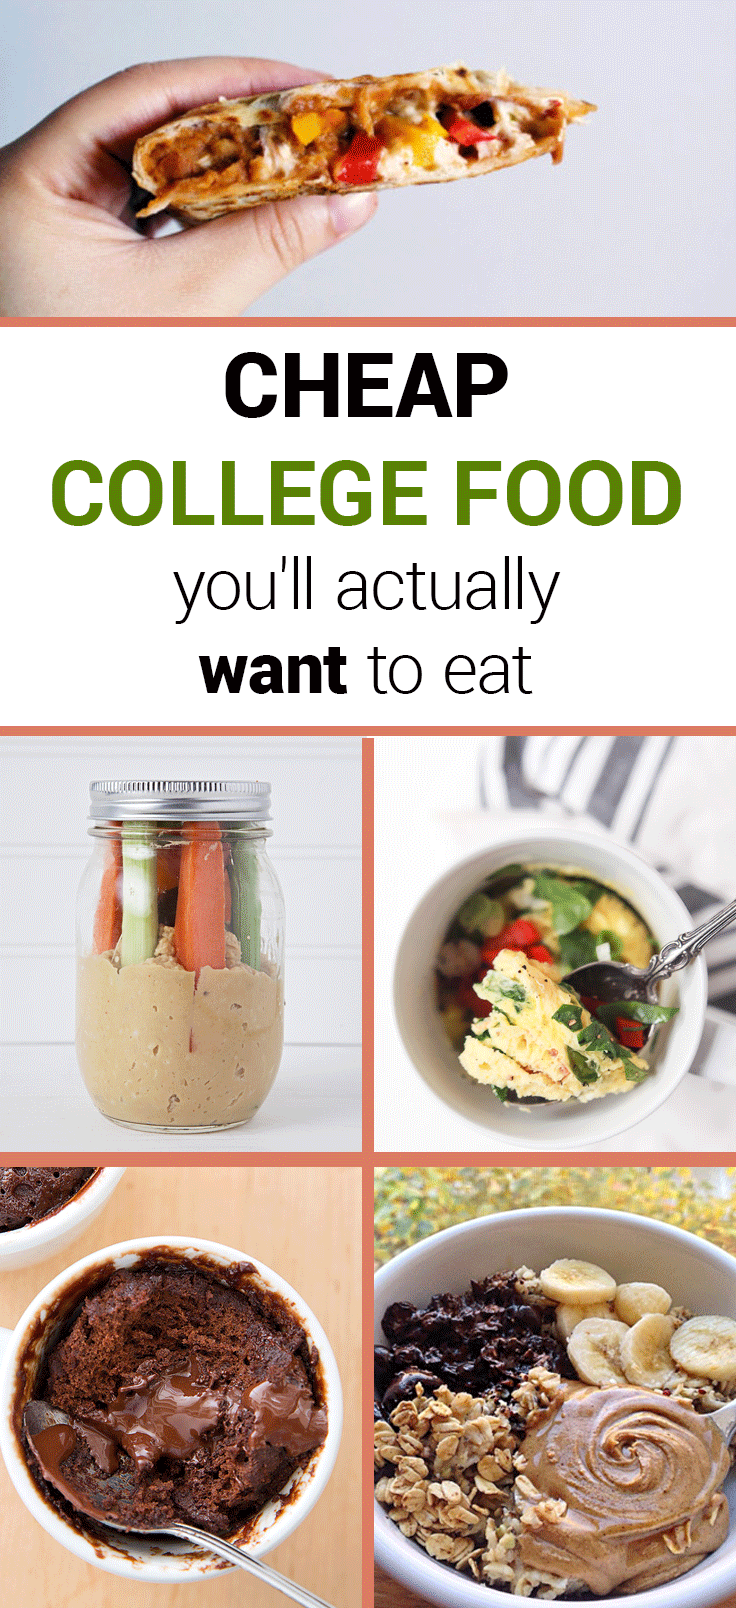 d0b2f8a2d8134fe9f4ff4554e7a28eb4 - How To Get Free Food As A College Student